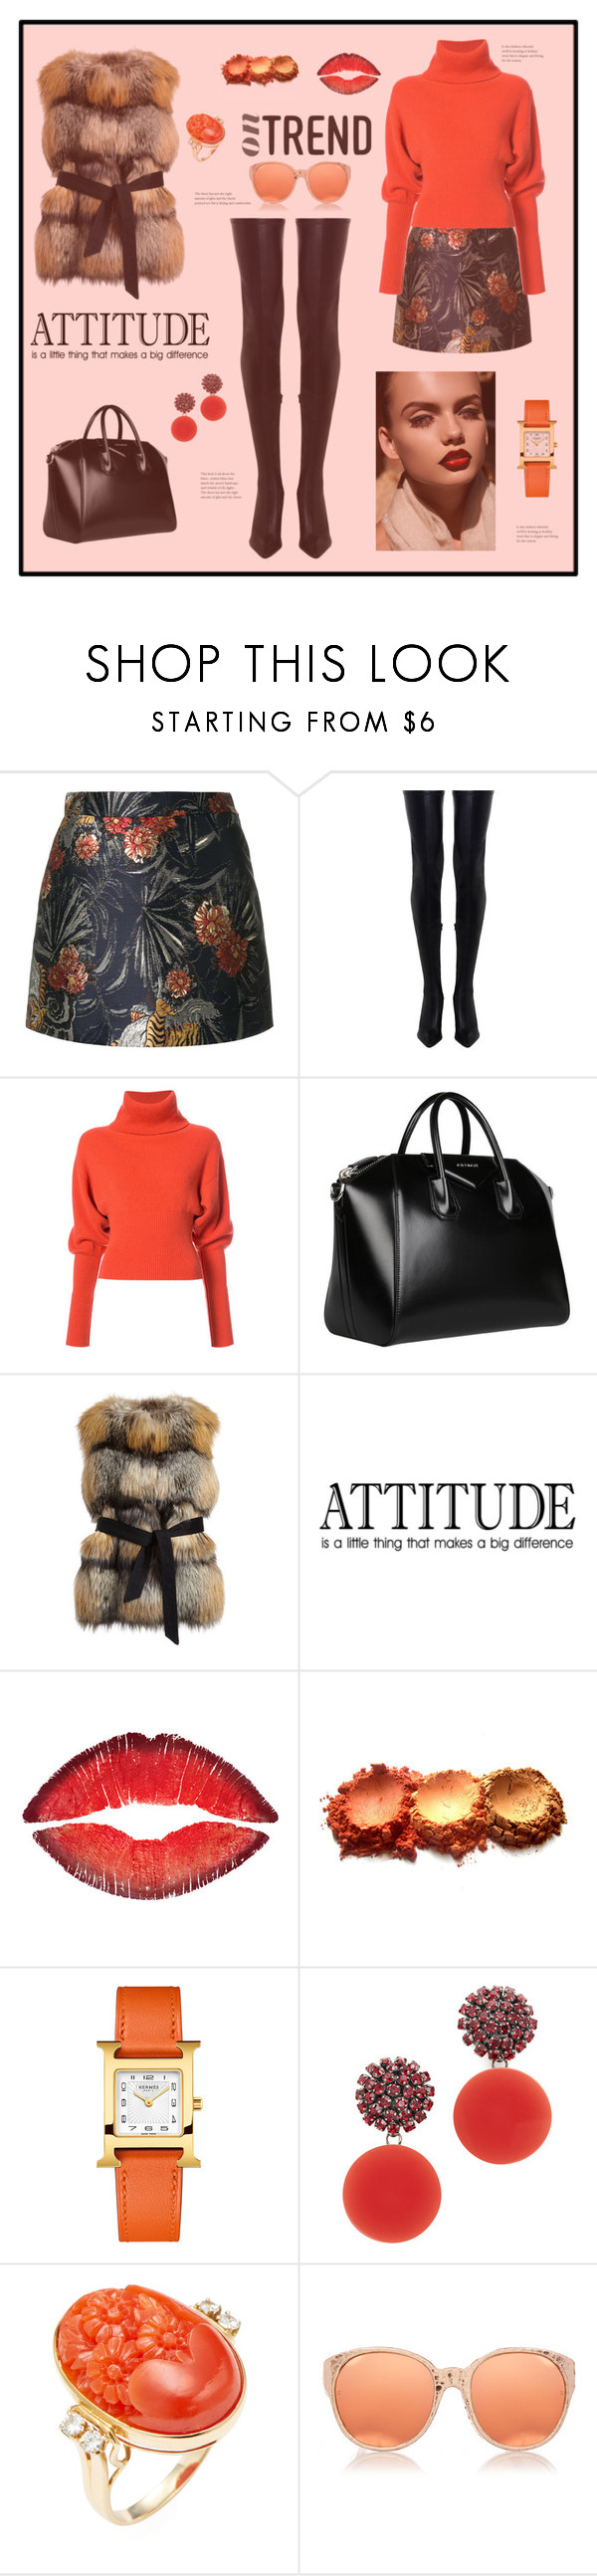 """""""On trend"""" by zabead ❤ liked on Polyvore featuring P.A.R.O.S.H., Zimmermann, Creatures of the Wind, Givenchy, Gorski, Hermès, Marni and Linda Farrow"""